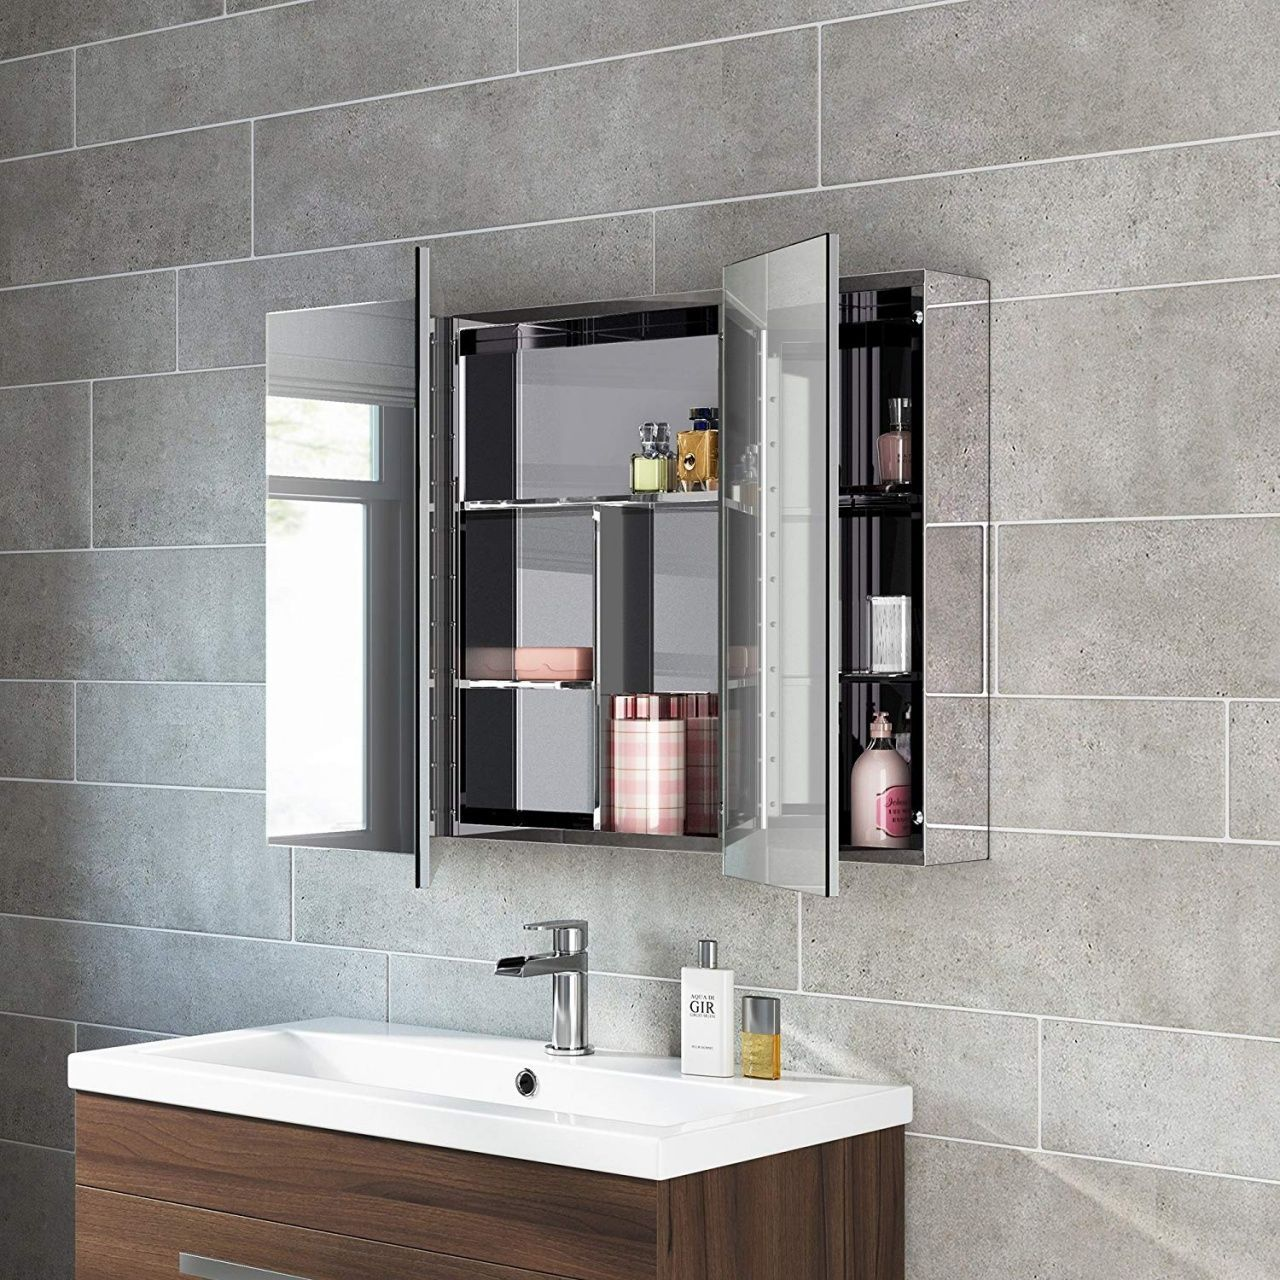 Likable Tall Bathroom Cabinet Mirror Door Hinges Replacement Sliding Doors Wall Likable Tall Bat In 2020 Bathroom Mirror Cabinet Mirror Cabinets Mirror Design Wall